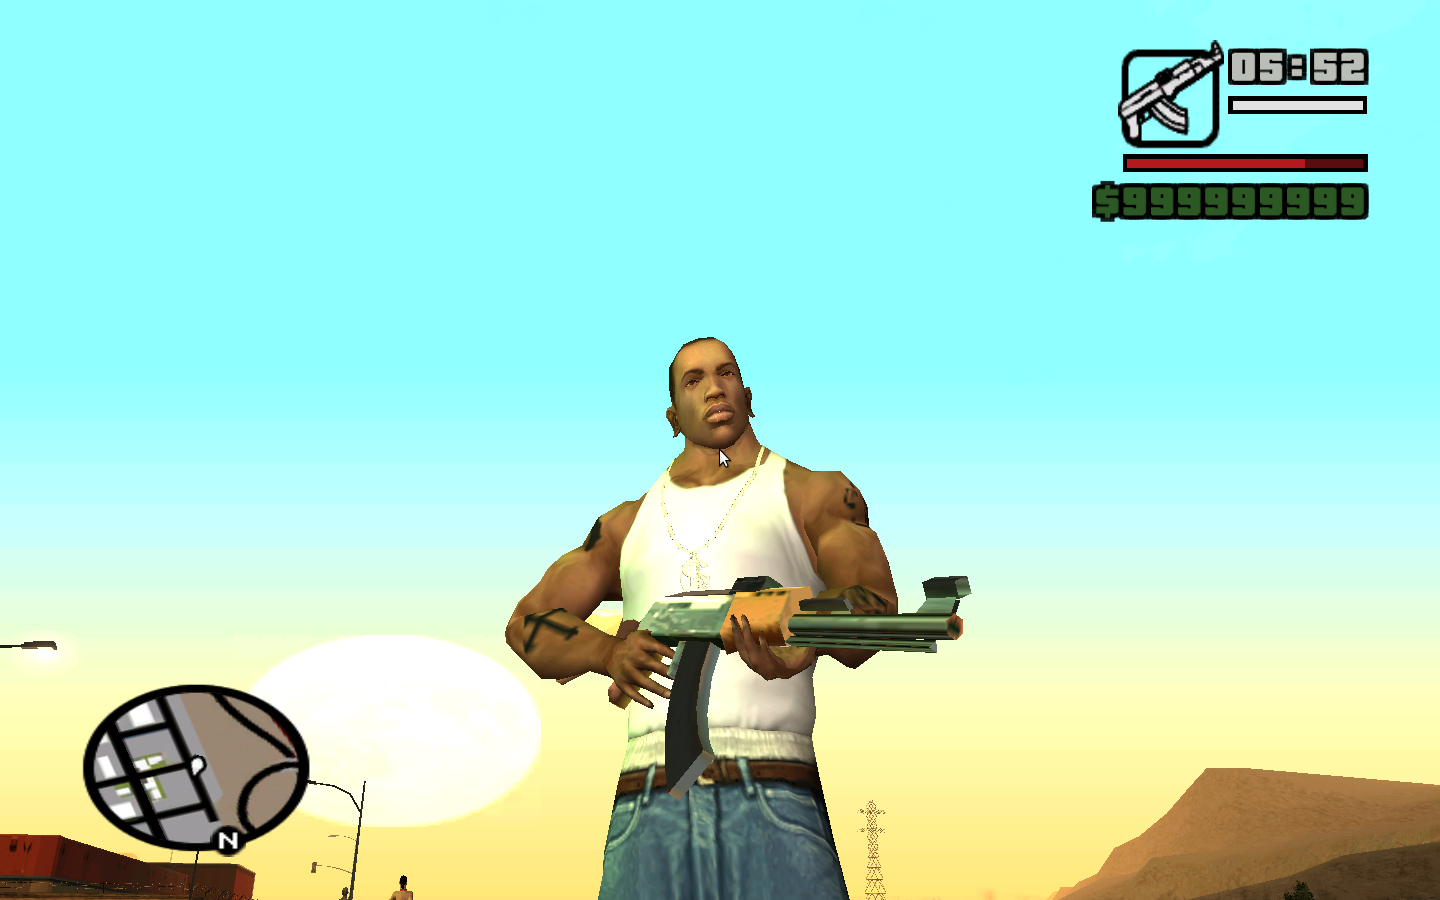 Grand theft auto san andreas v2